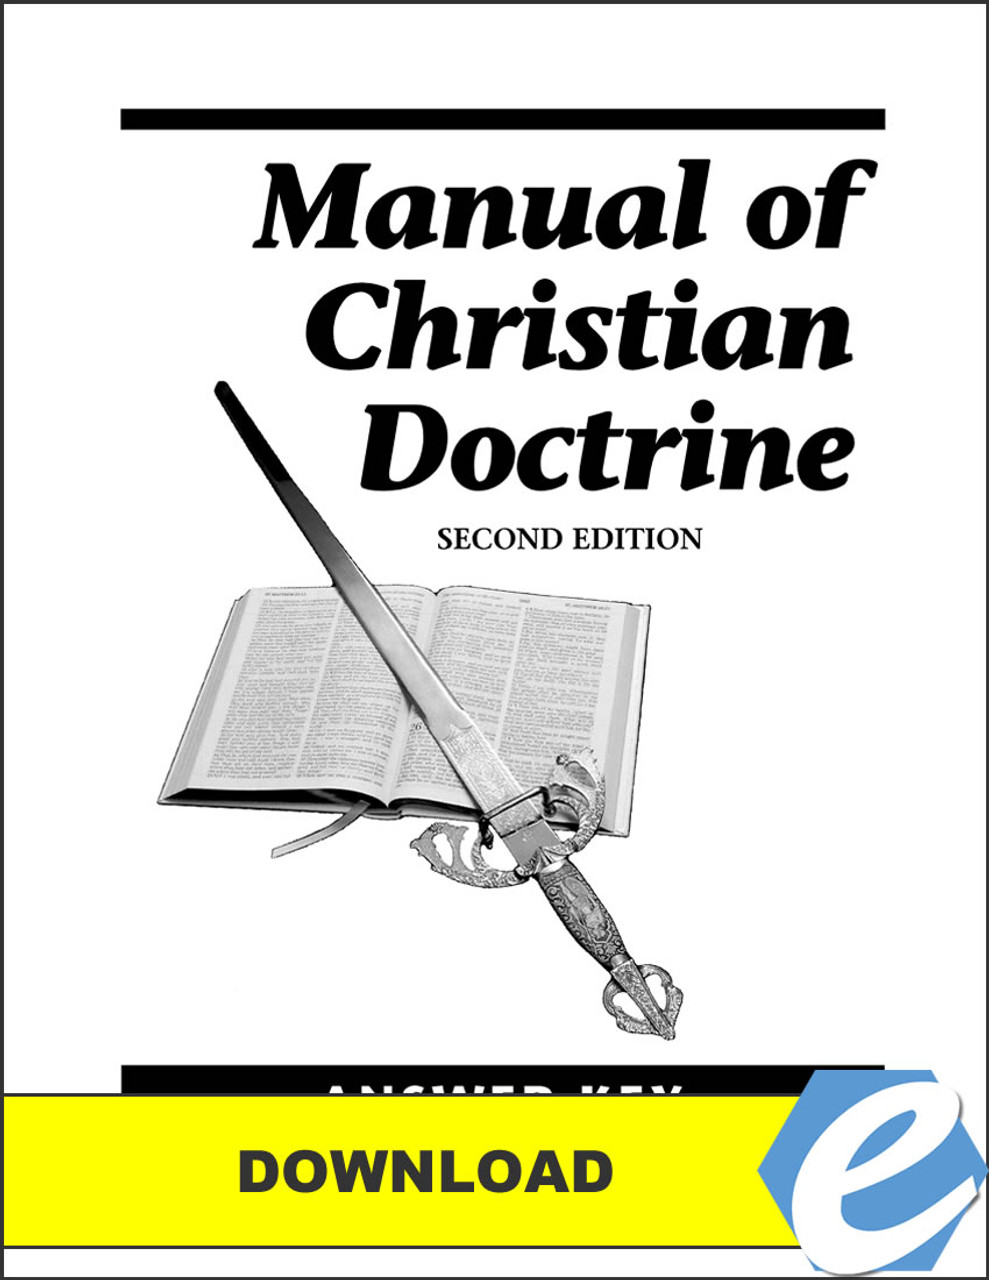 Manual of Christian Doctrine, 2nd edition - Answer Key - PDF Download